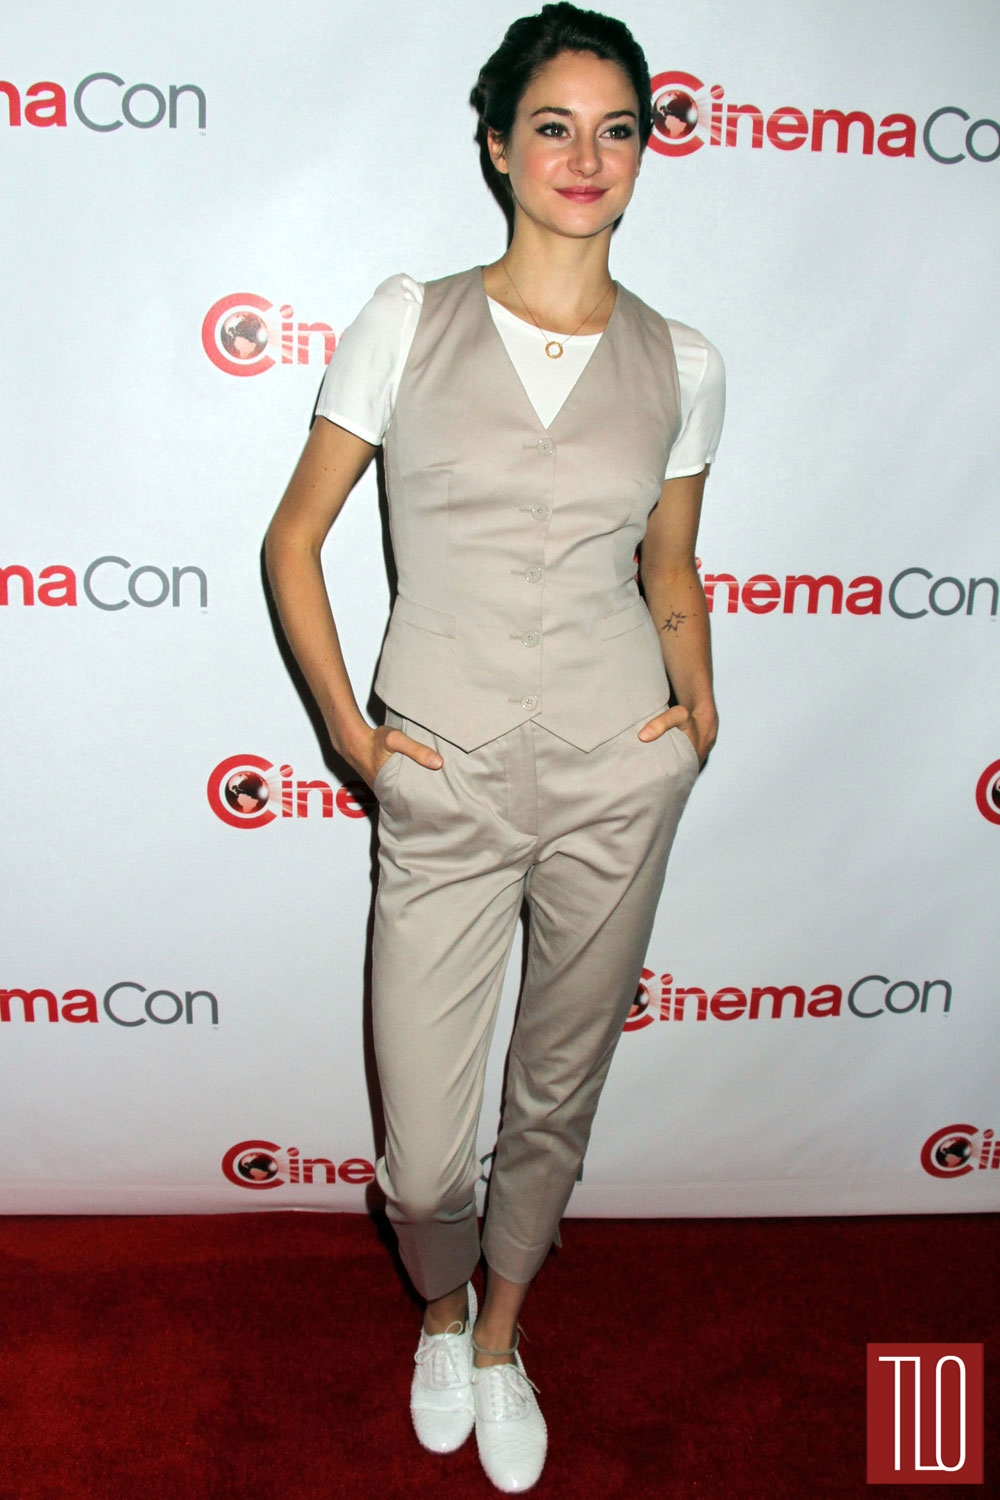 Shailene-Woodley-Dolce-Gabbana-CinemaCon-2014-Tom-Lorenzo-Site-TLO (1)